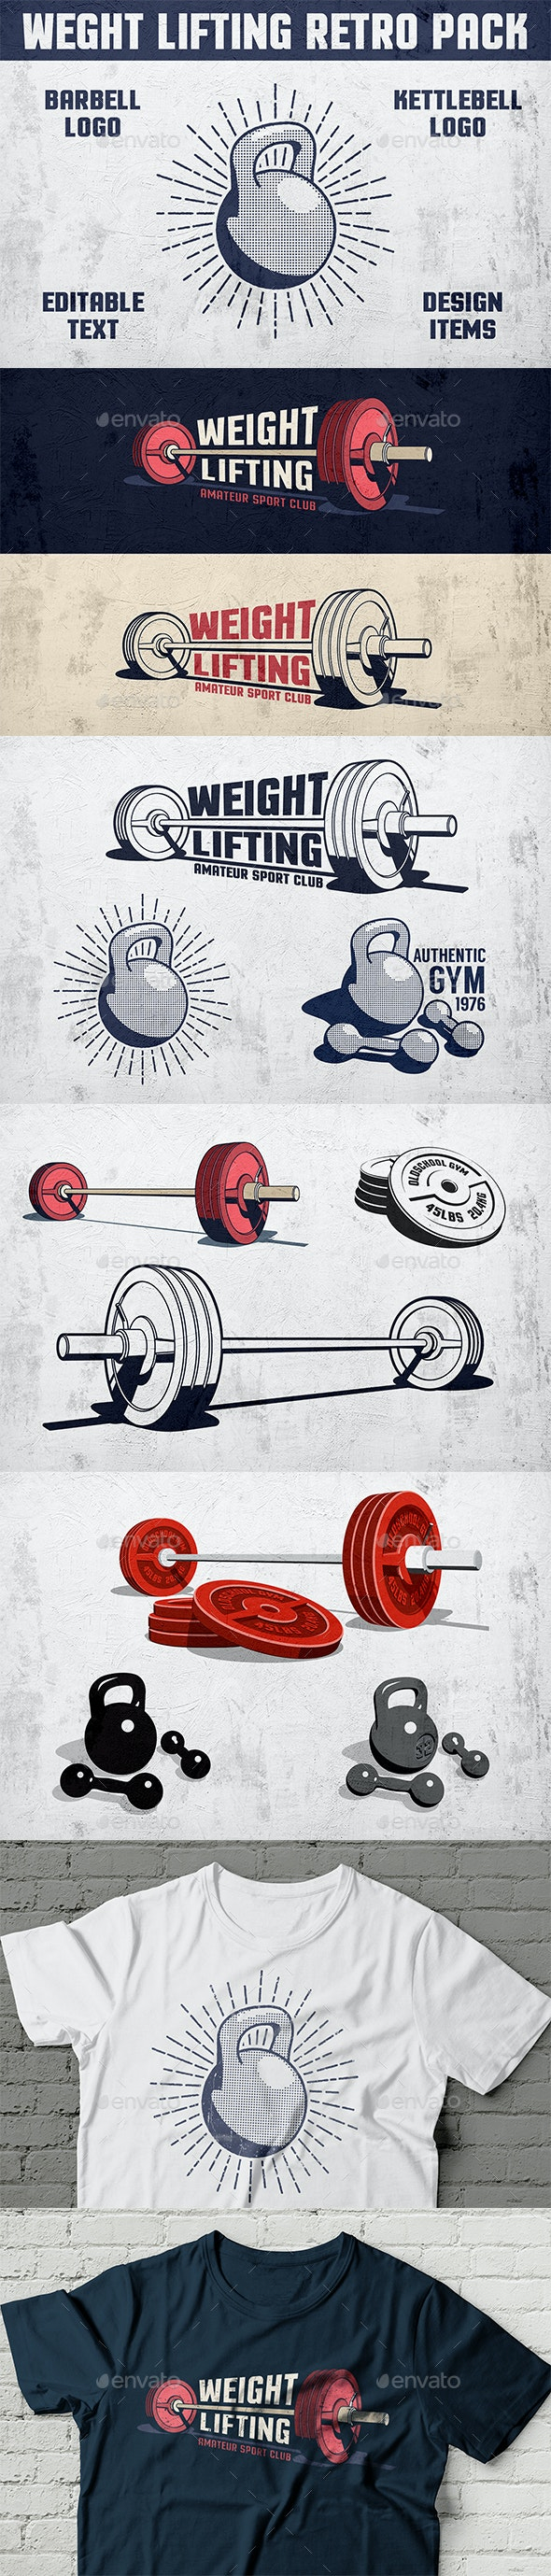 Weight Lifting Retro Pack - Sports/Activity Conceptual